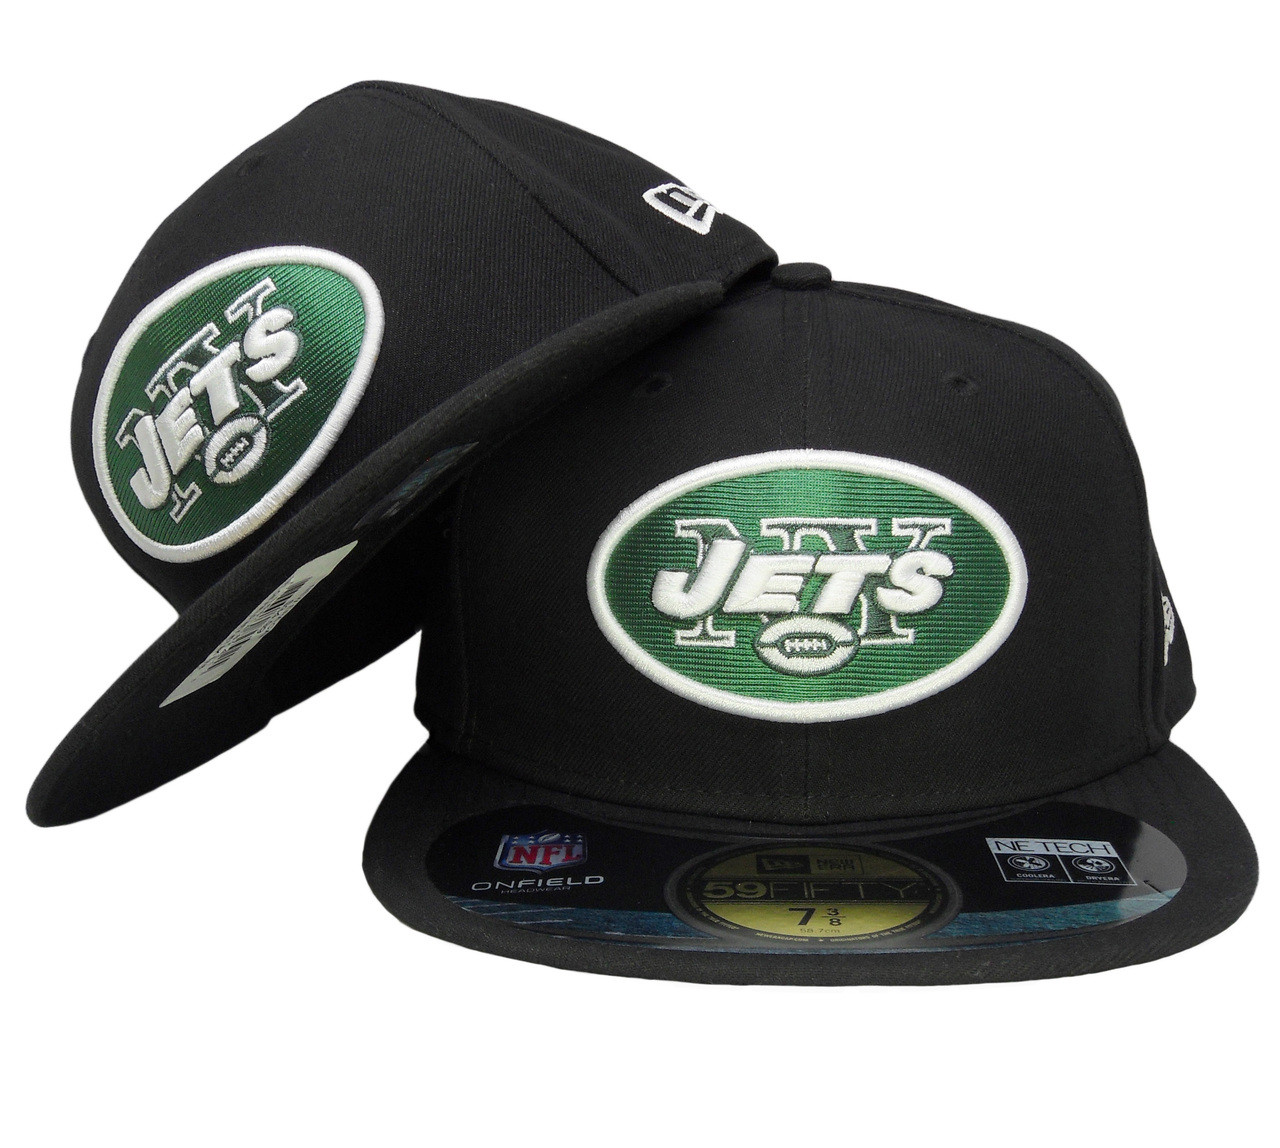 f445d158eae9bd New York Jets New Era 59Fifty Onfield Fitted Hat - Black, Hunter Green -  ECapsUnlimited.com